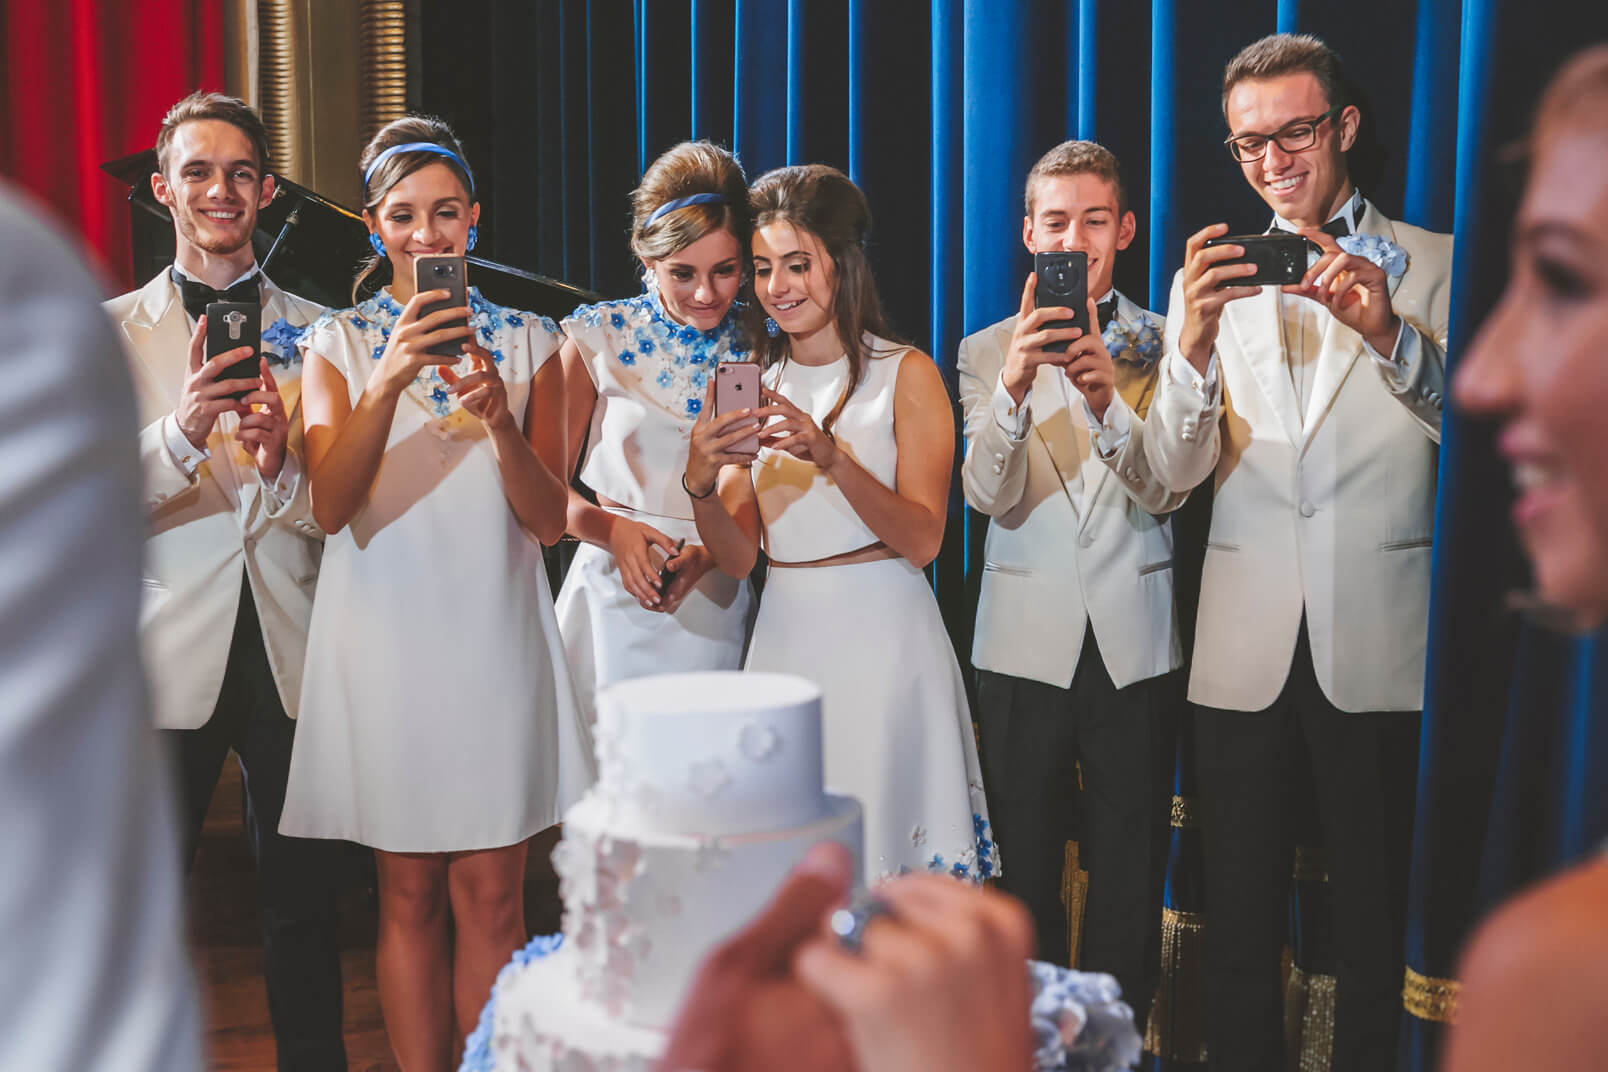 Bridesmaids and bestmen taking photos to the bride and groom using their phones.